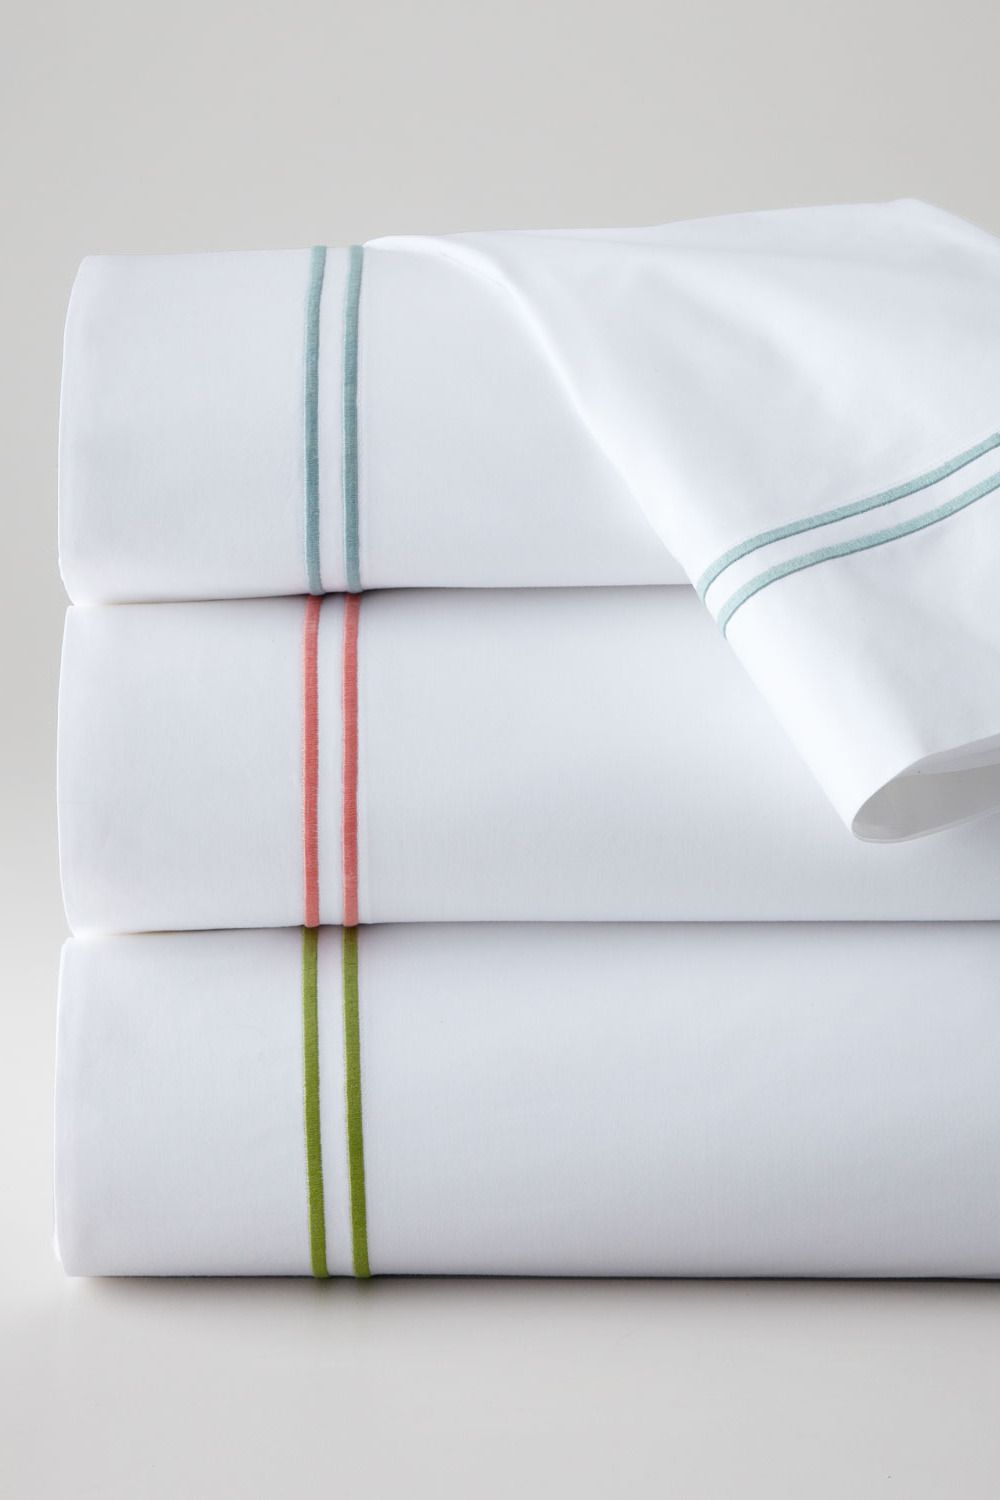 What Are The Best Bed Sheets?